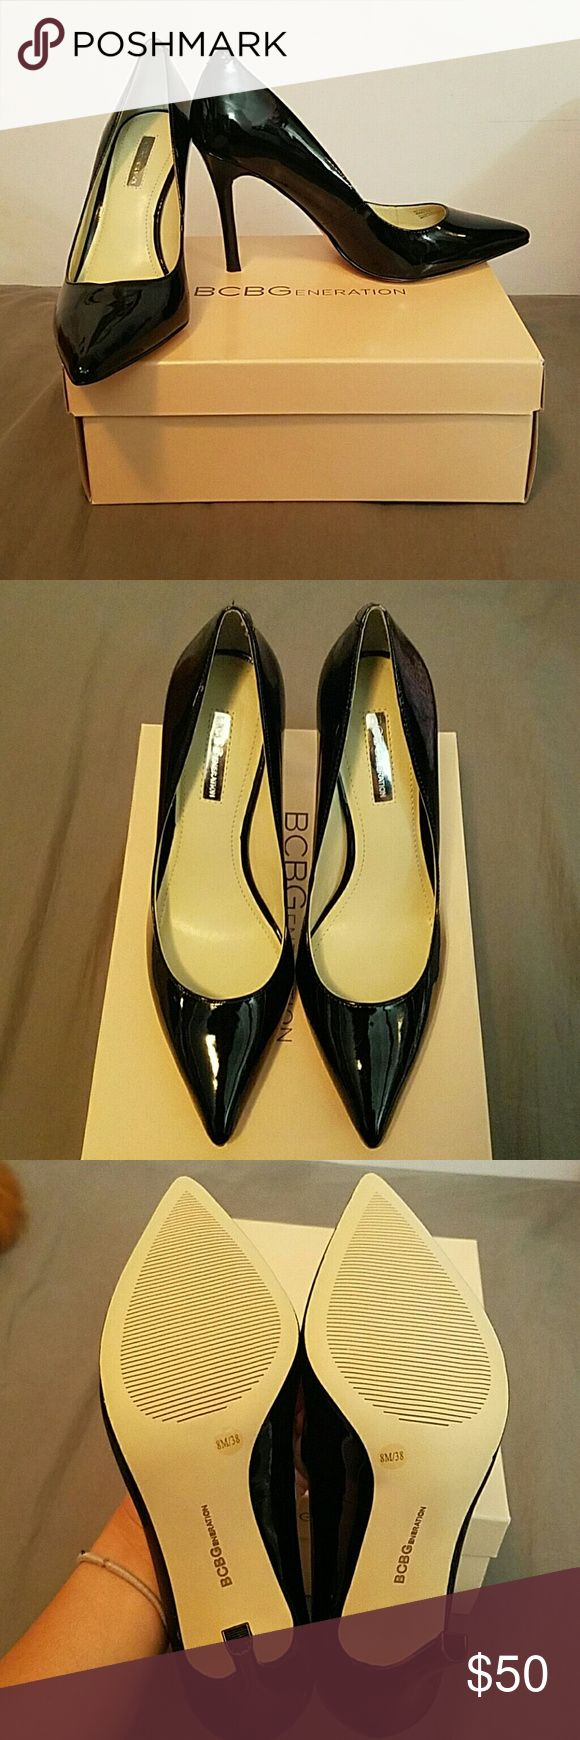 NIB* BCBG Pumps New in Box- Never worn. Only tried on. Love